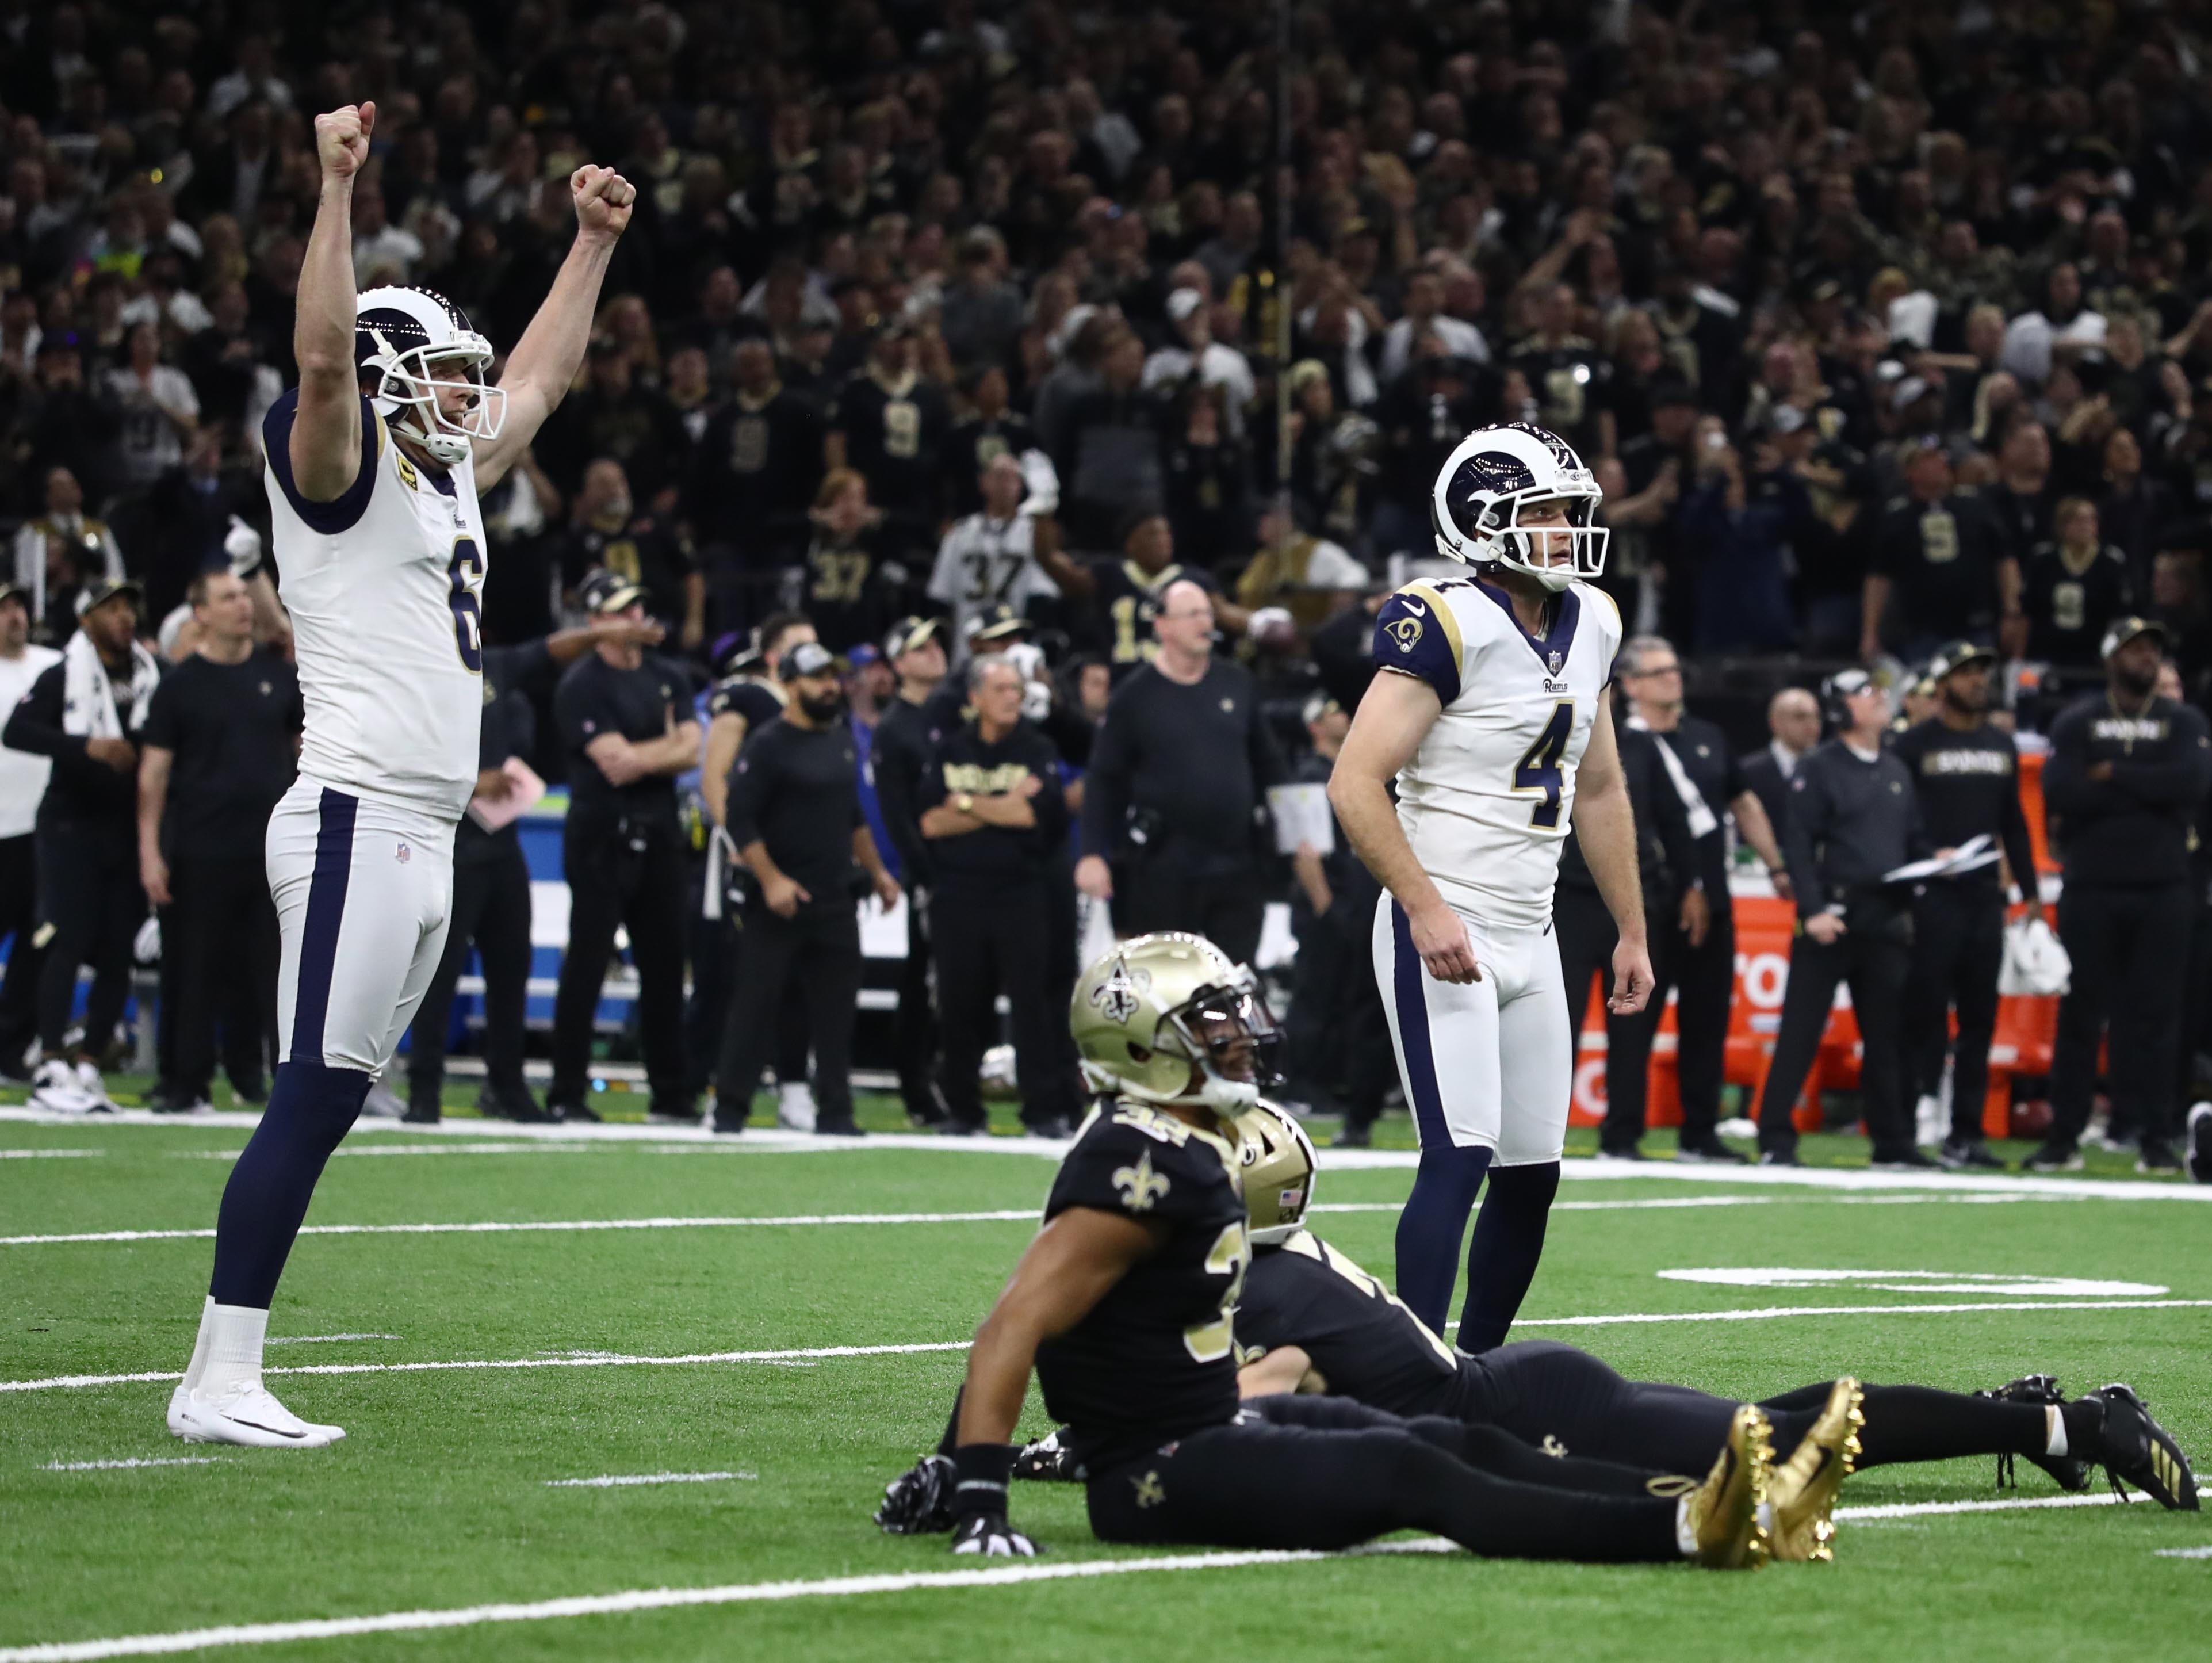 Los Angeles Rams kicker Greg Zuerlein (4) celebrates with punter Johnny Hekker (6) after kicking the tying field goal against the New Orleans Saints during the fourth quarter.